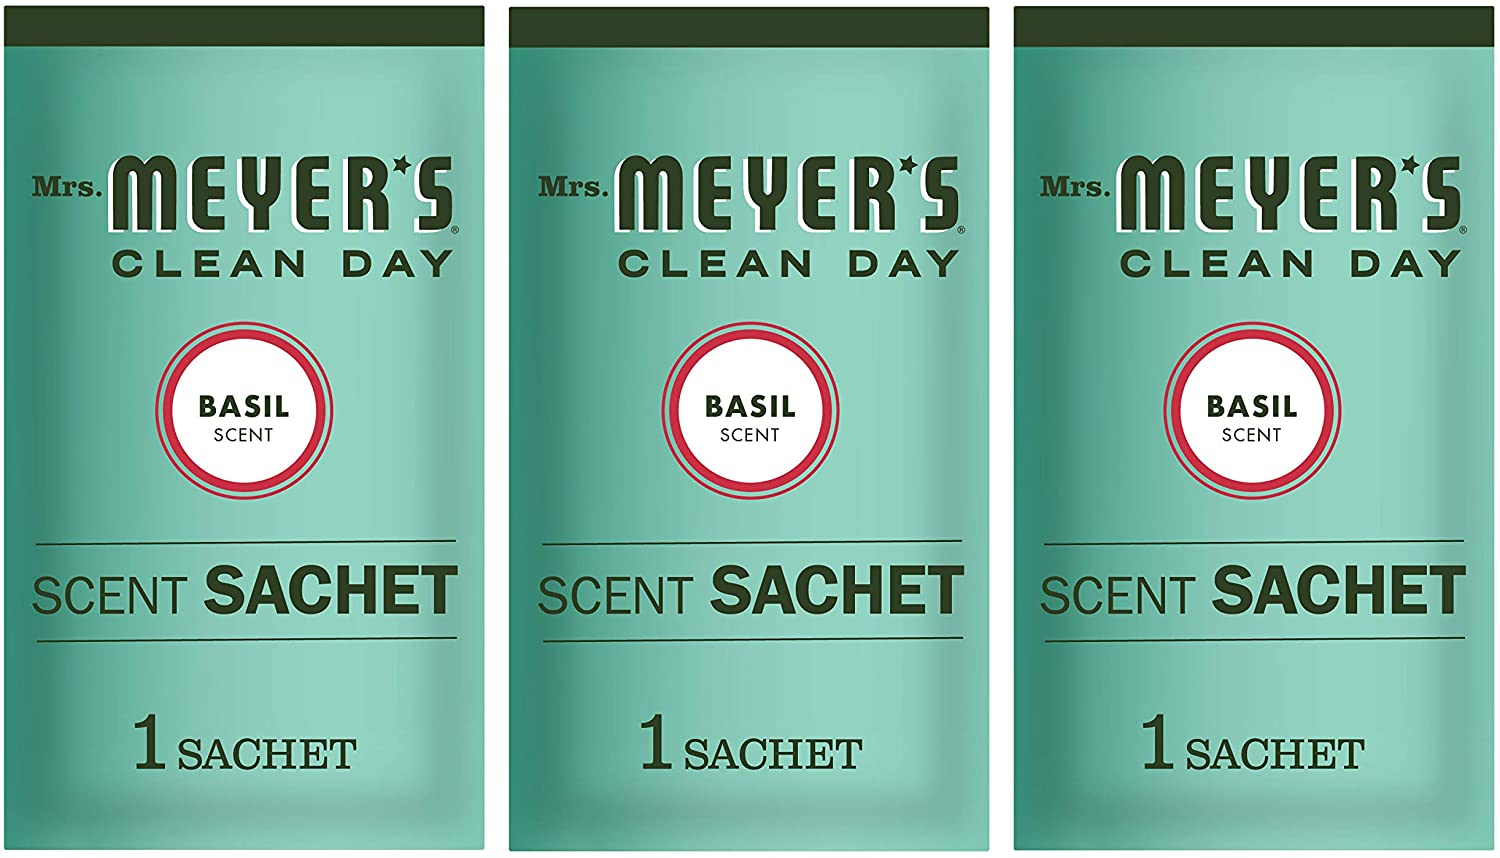 Mrs. Meyer's Clean Day Air Freshening Scent Sachets, Fragrance for Lockers, Cars, and Closets, Basil Scent, 3 ct